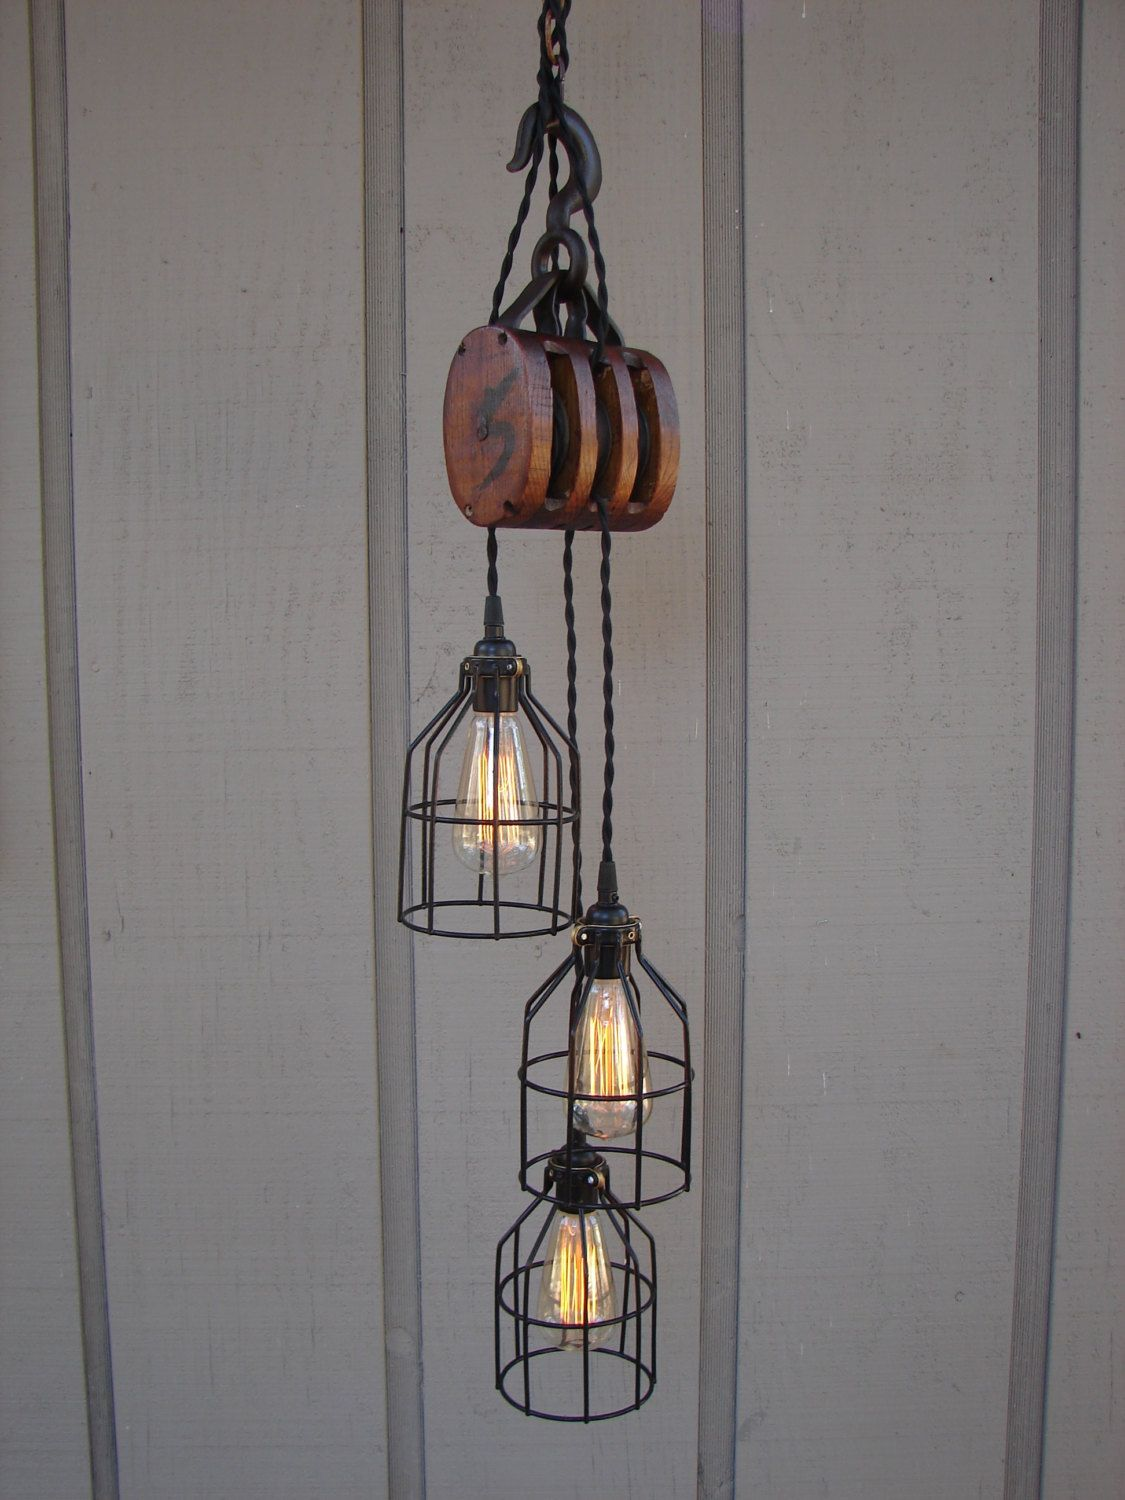 Antique Pulley Pendant Light For Living Room Lighting